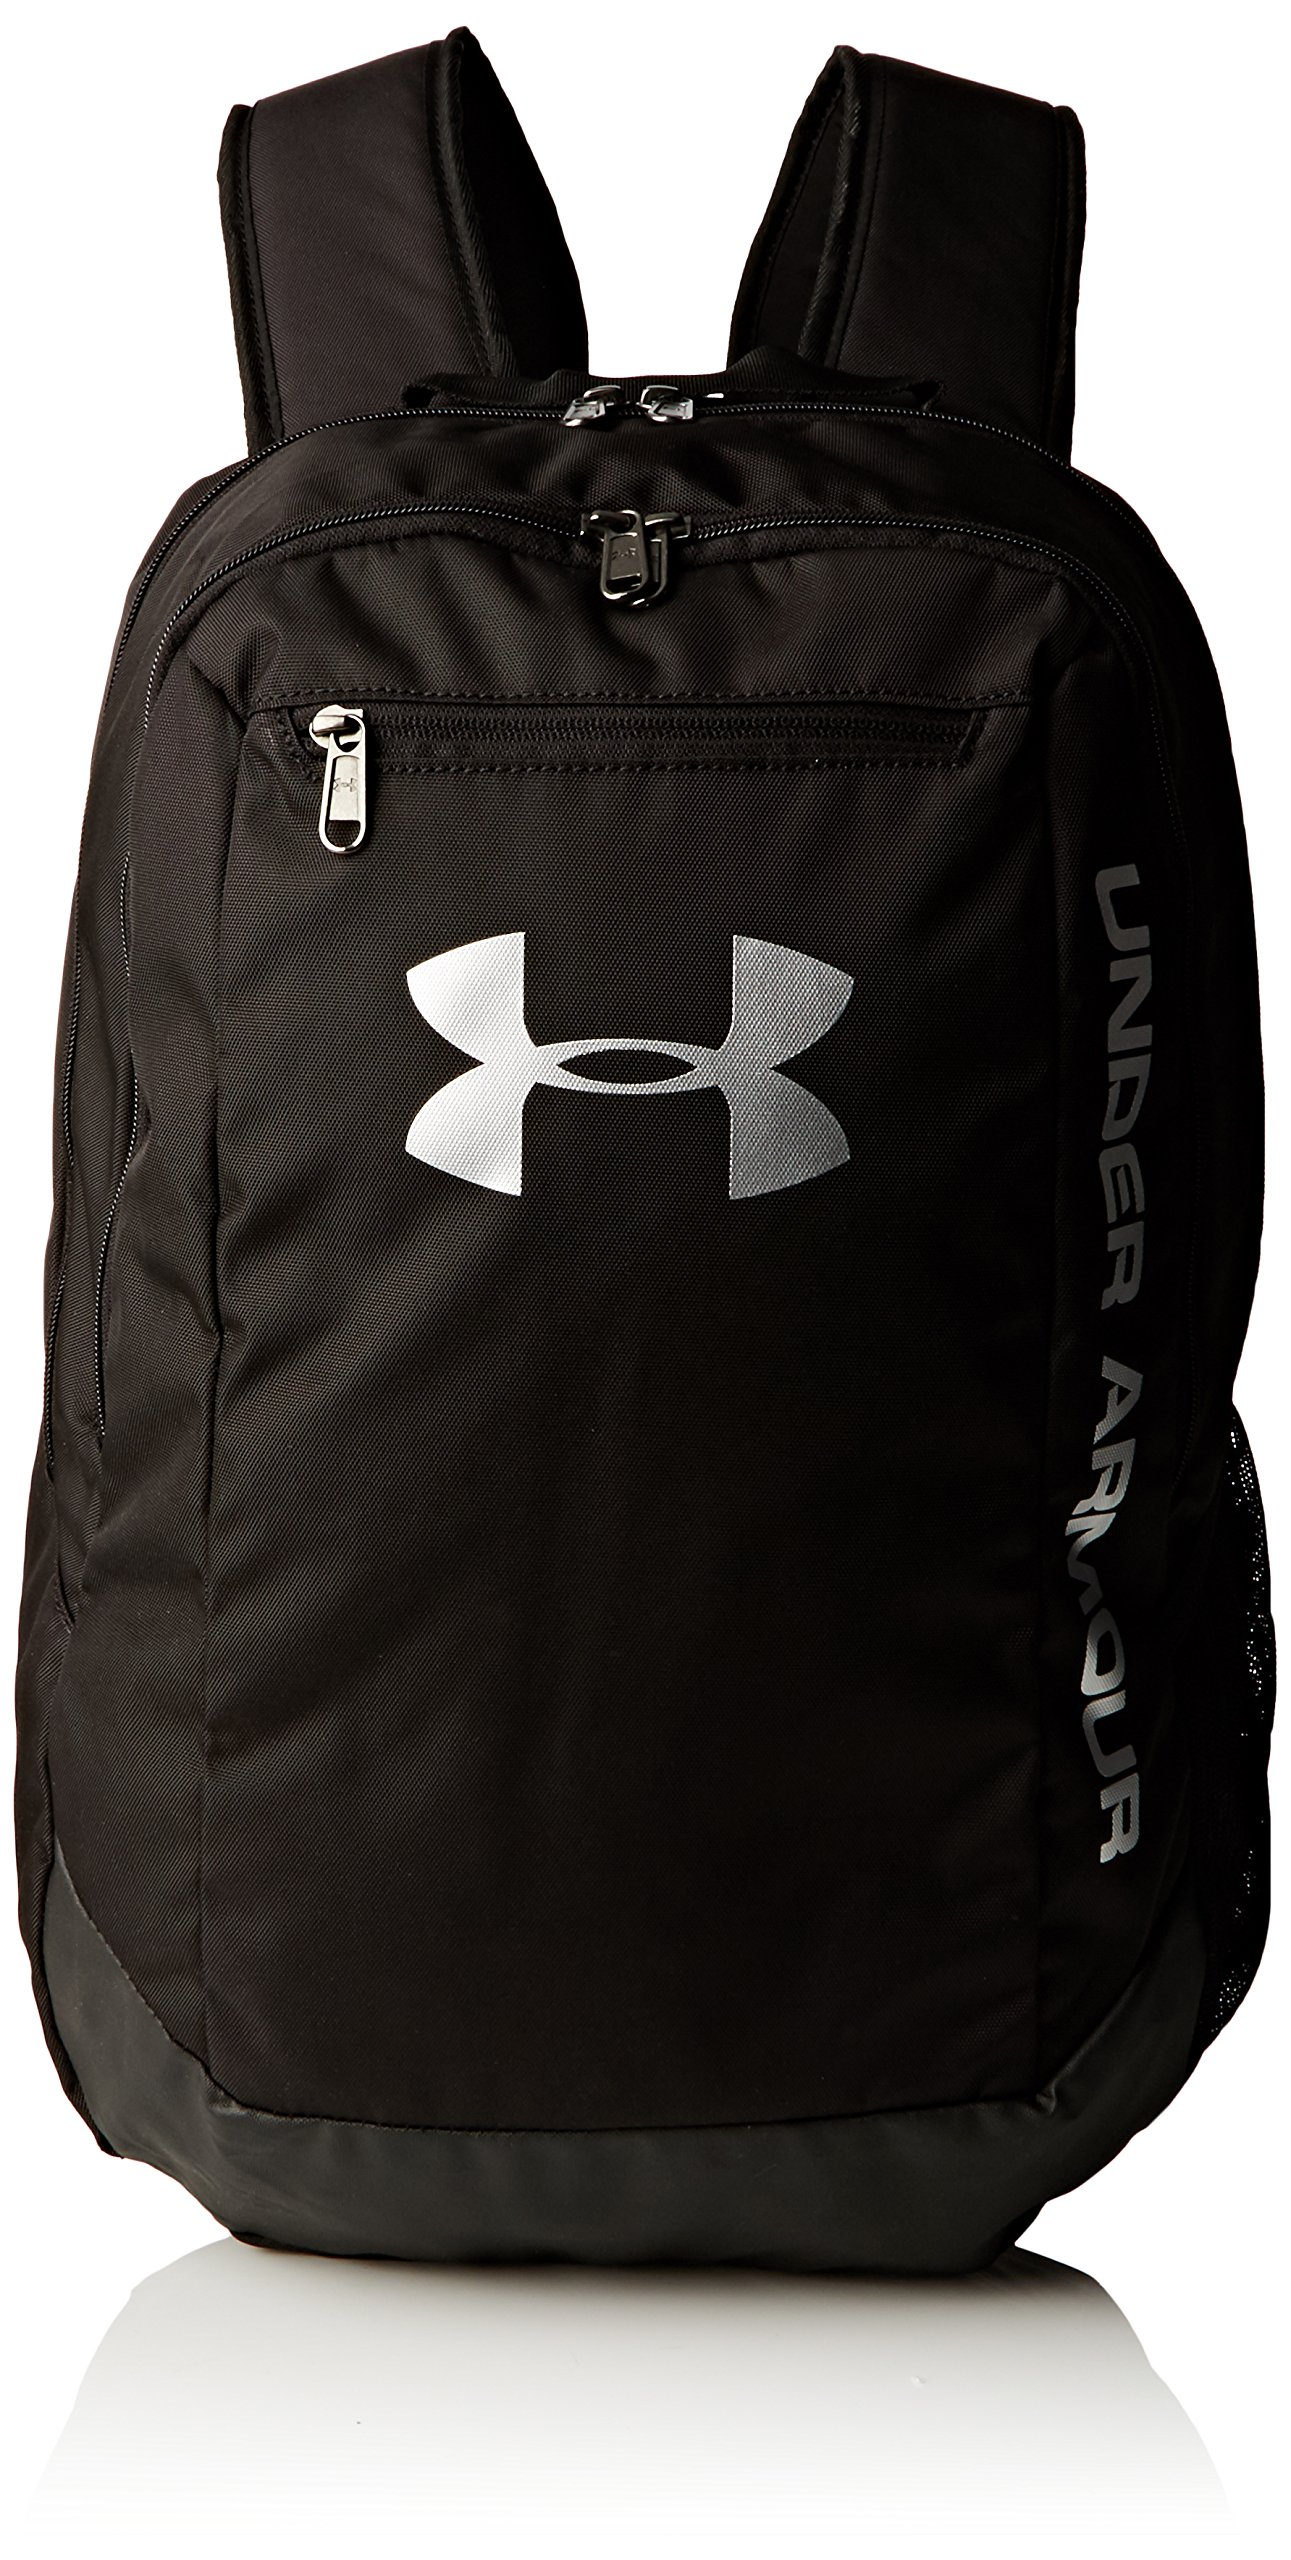 16c0c8539b Get Quotations · Under Armour Unisex UA Hustle Backpack LDWR